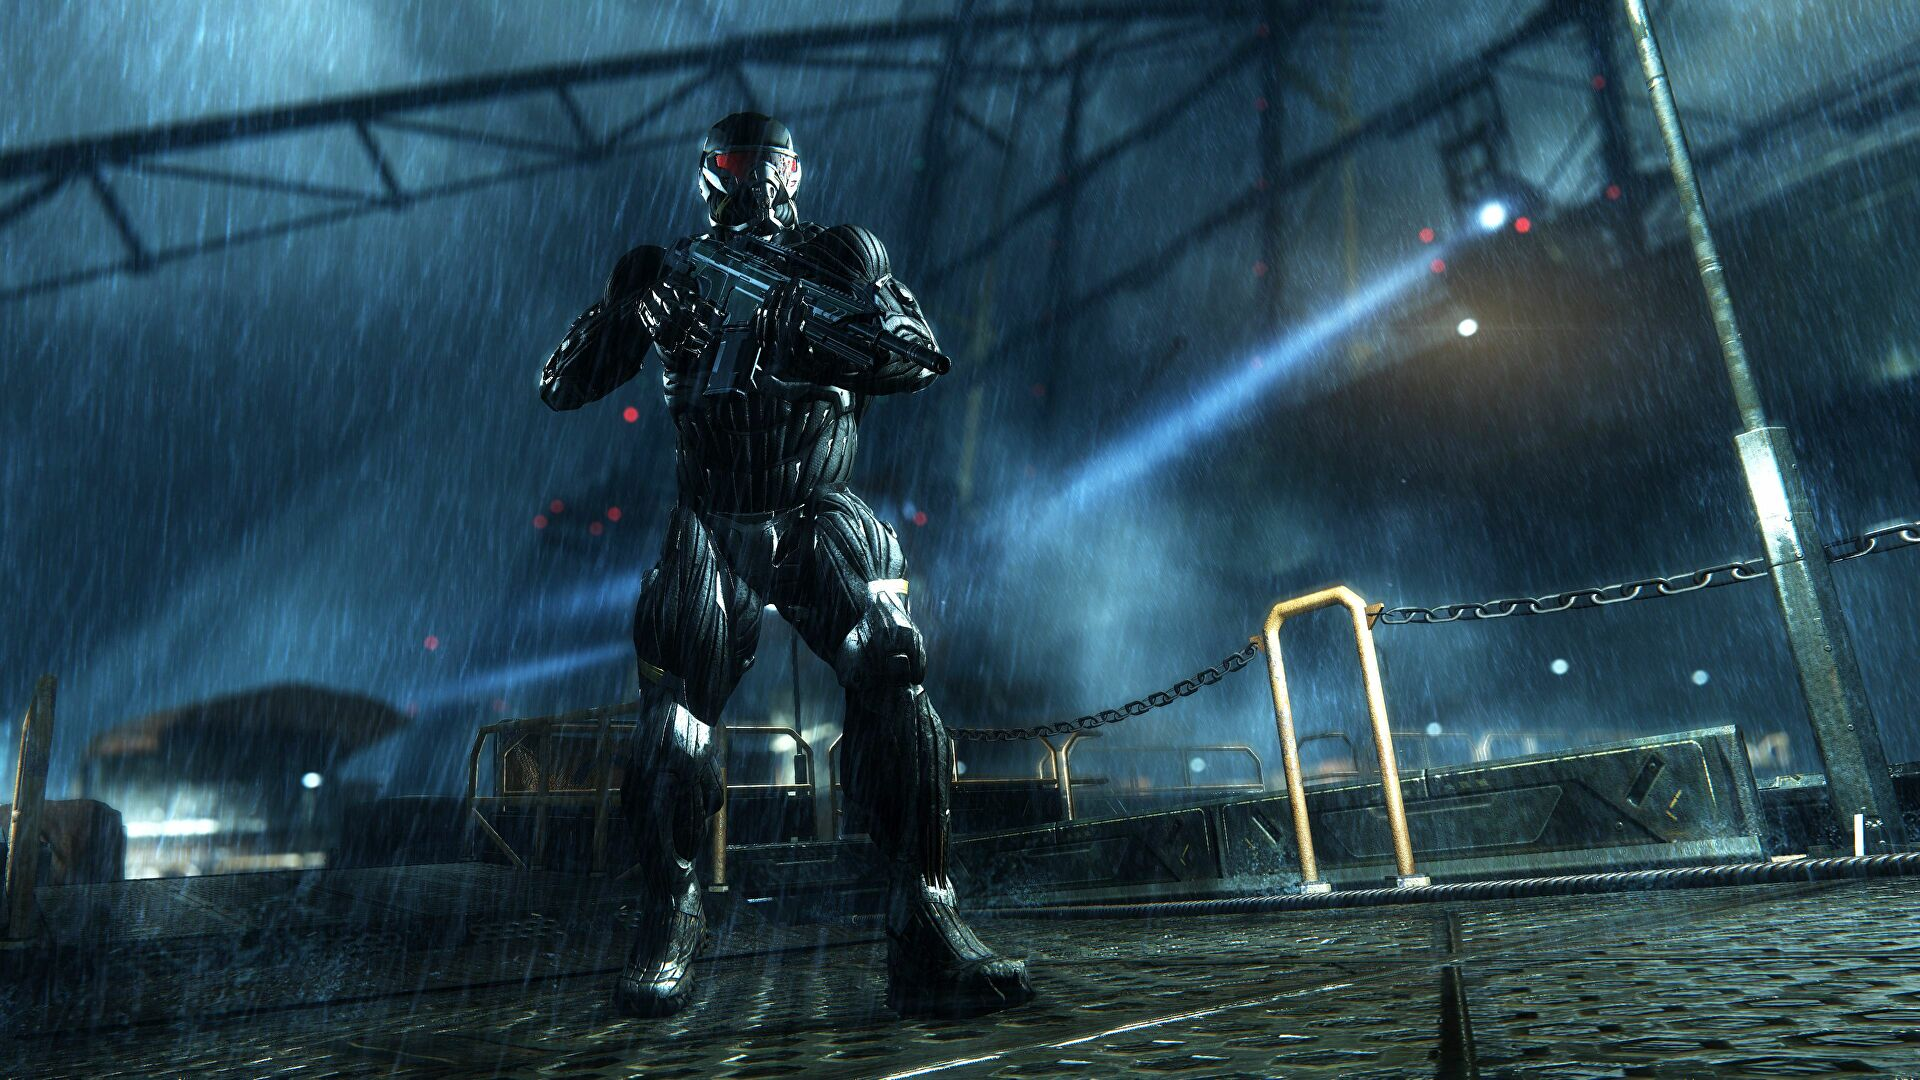 Crysis Remastered Trilogy review - defying time